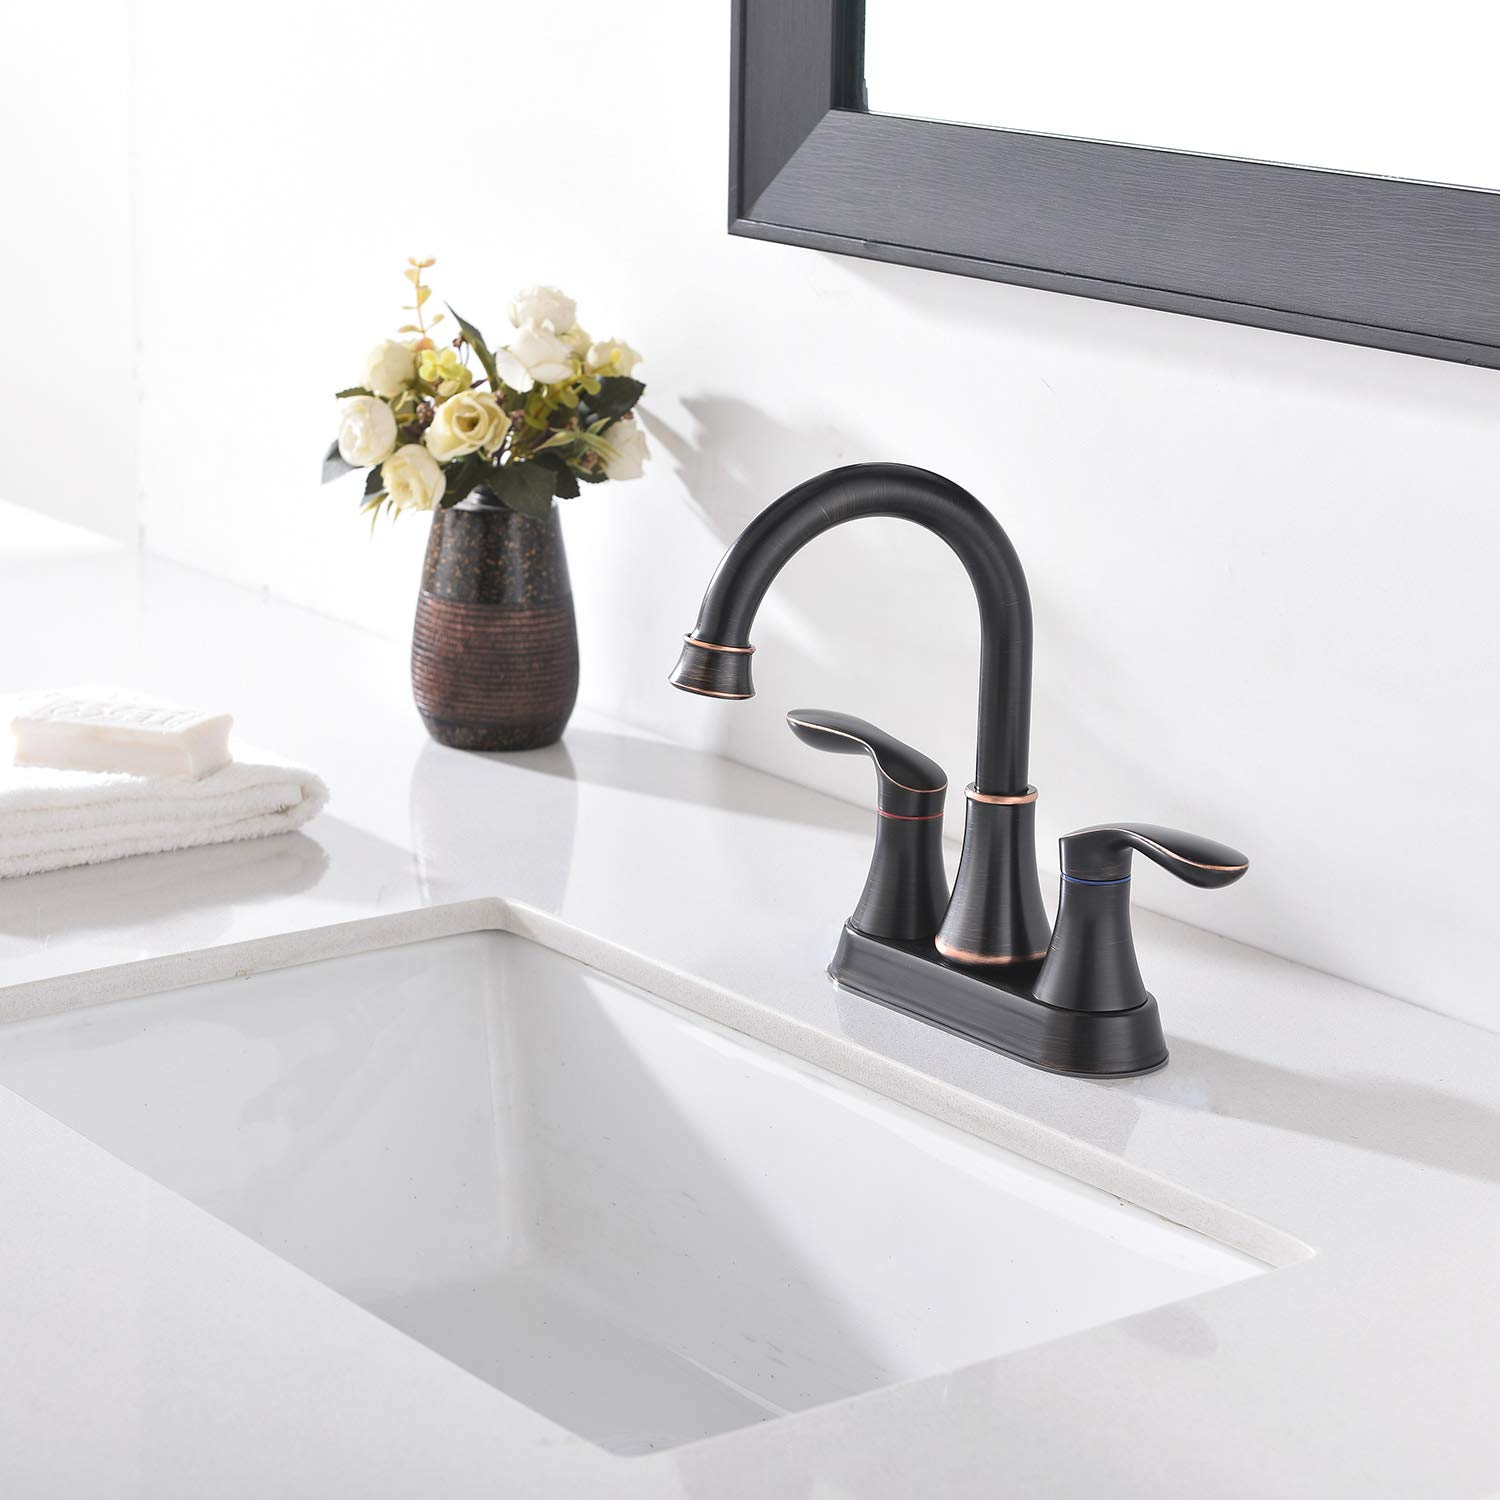 Friho Lead-Free Modern Commercial Two Handle Brushed Nickel Bathroom Faucet,Bathroom Vanity Sink Faucets with Drain Stopper and Water Hoses